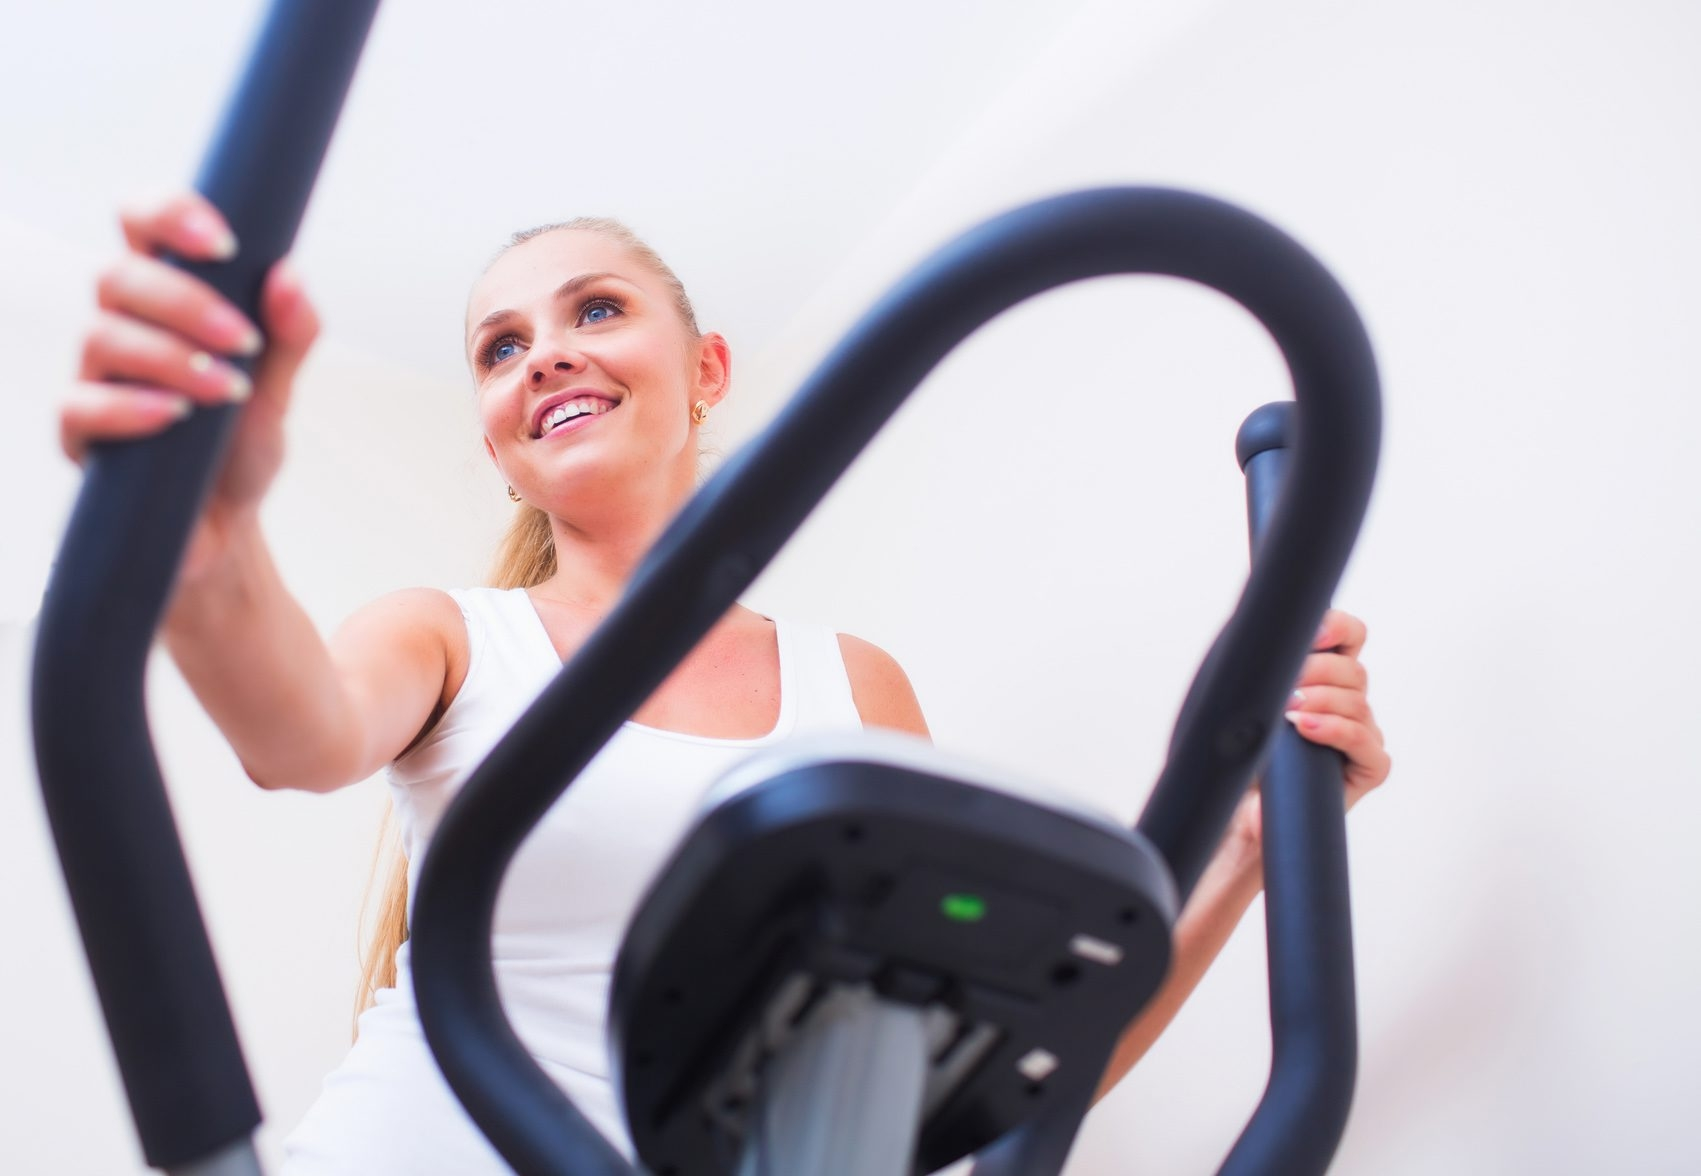 Even a few minutes of exercise a day can help boost energy and achieve a healthy weight.